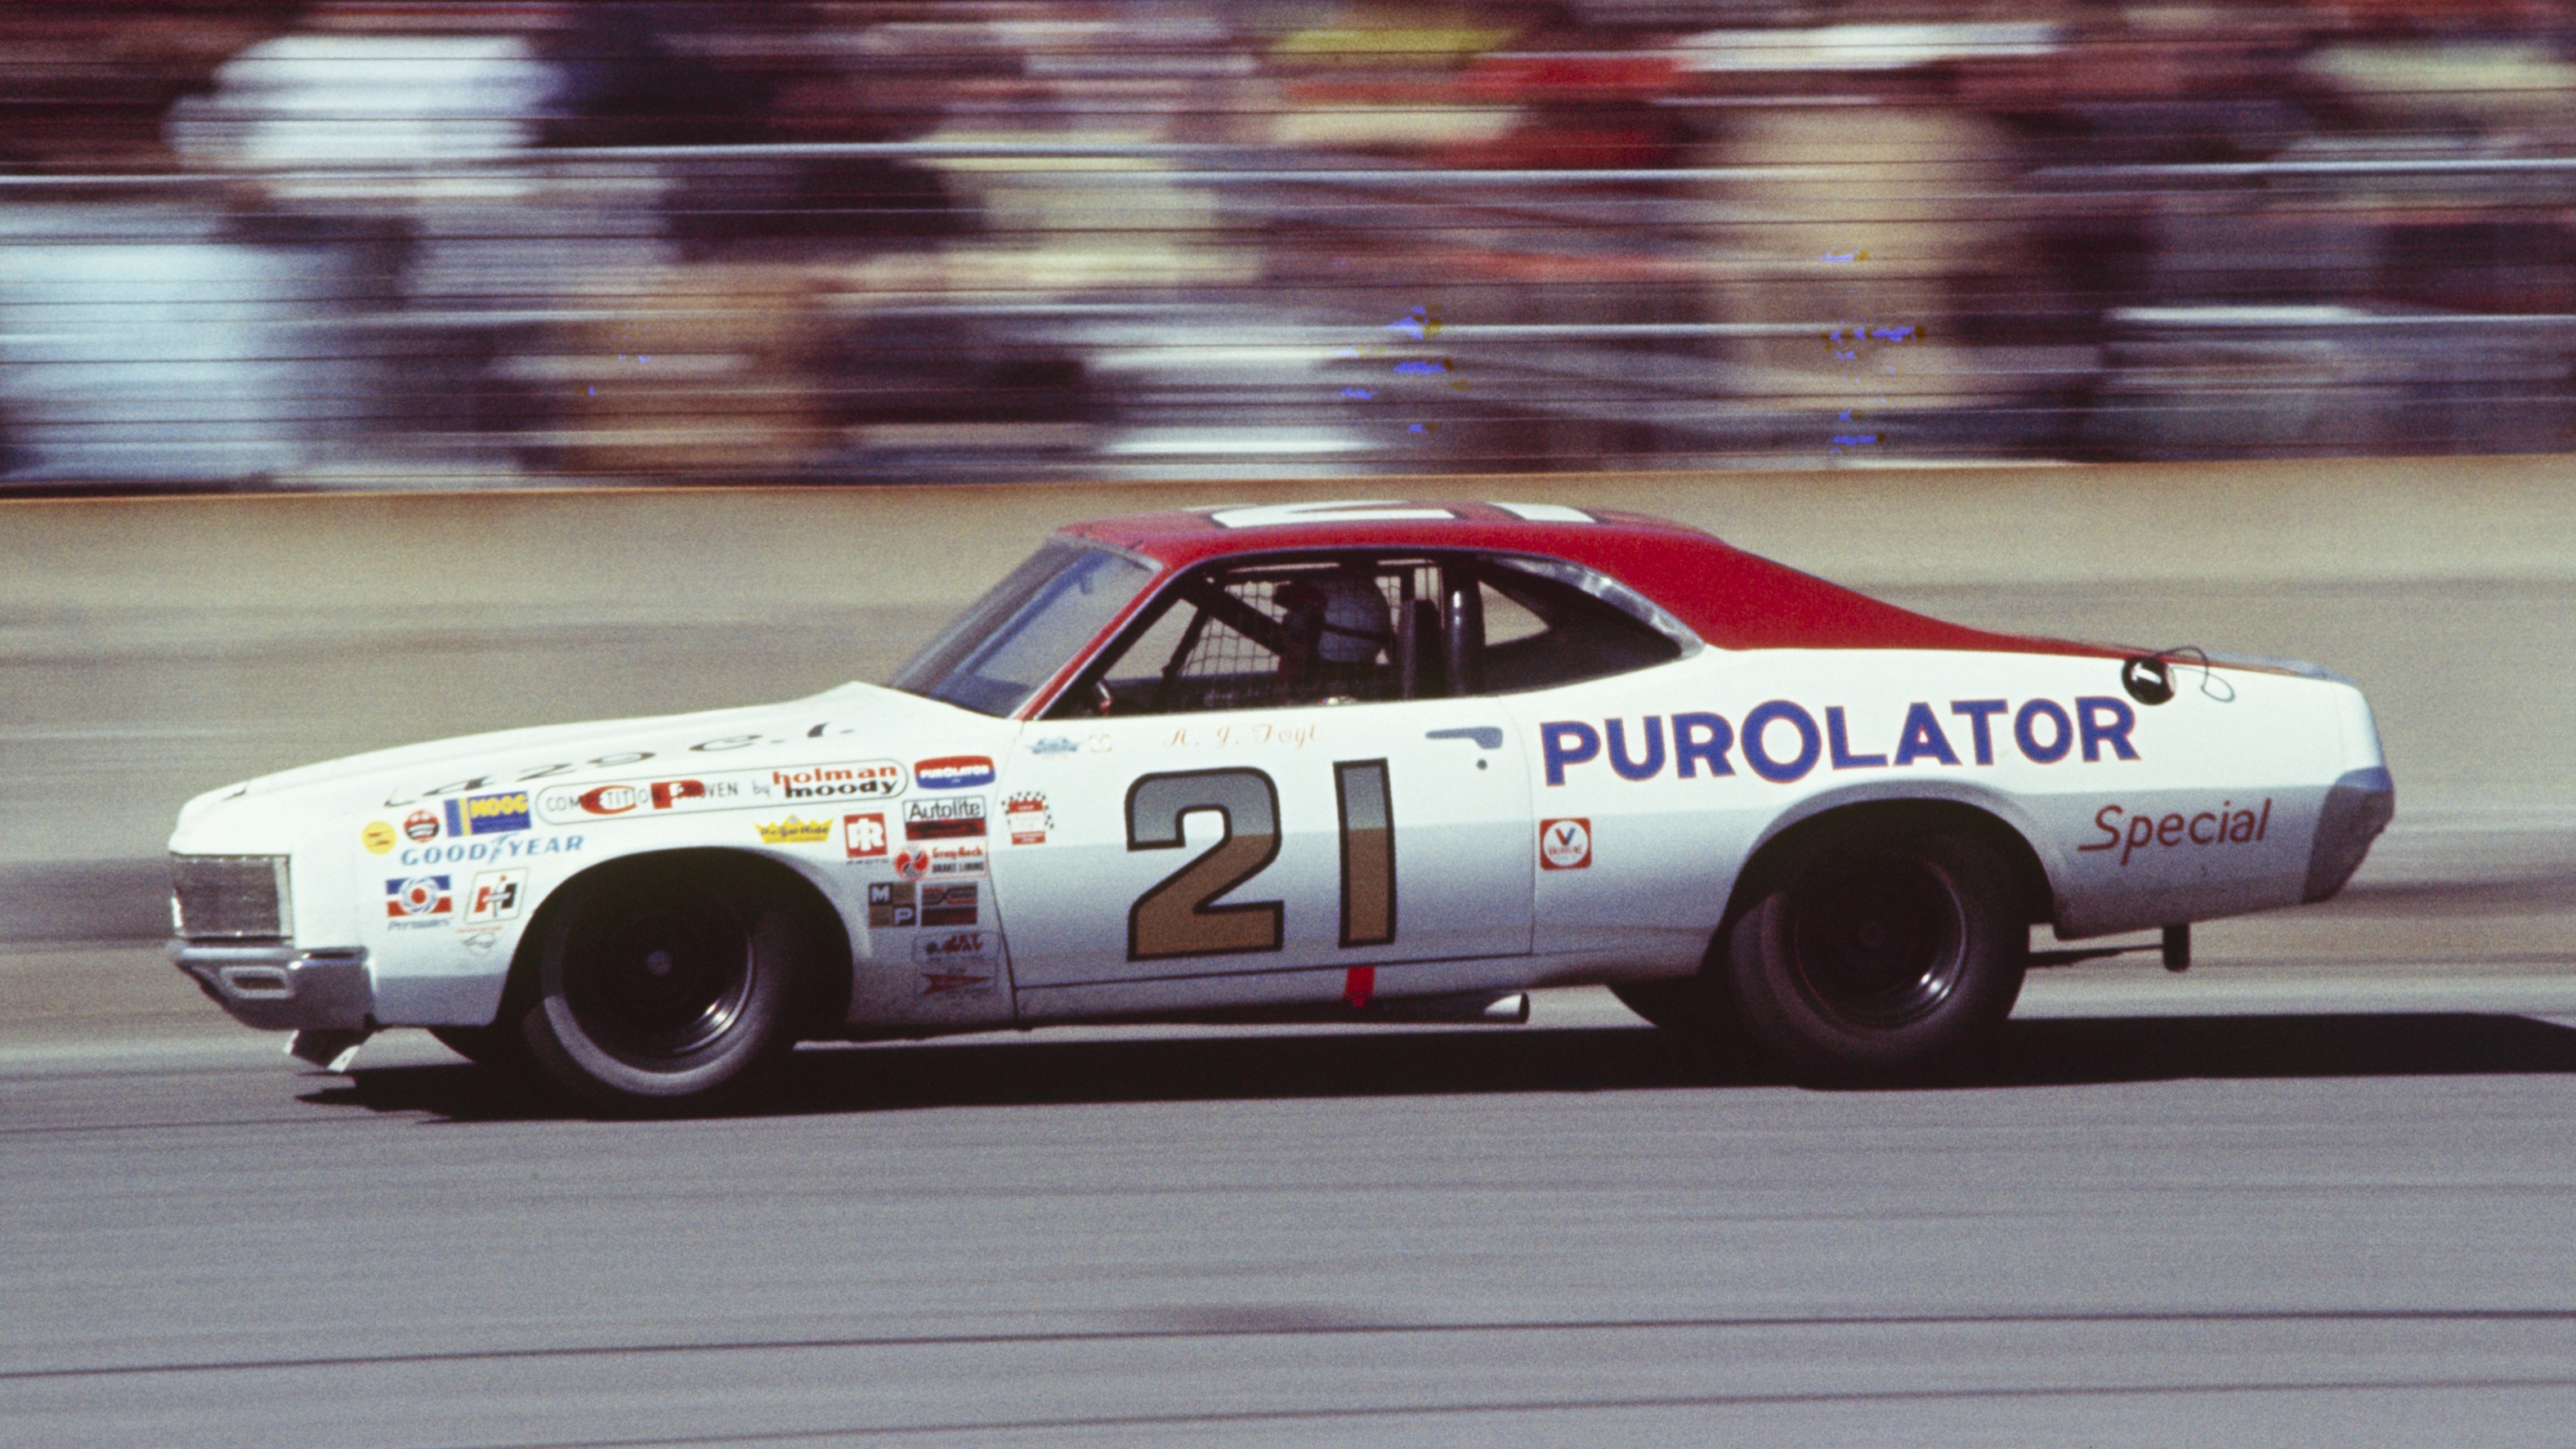 UNITED STATES - FEBRUARY 20:  1972 Daytona 500 - NASCAR. Race winner A.J. Foyt of the Wood Brothers team drives his Purolator '71 Mercury.  (Photo by Bob D'Olivo/The Enthusiast Network/Getty Images)